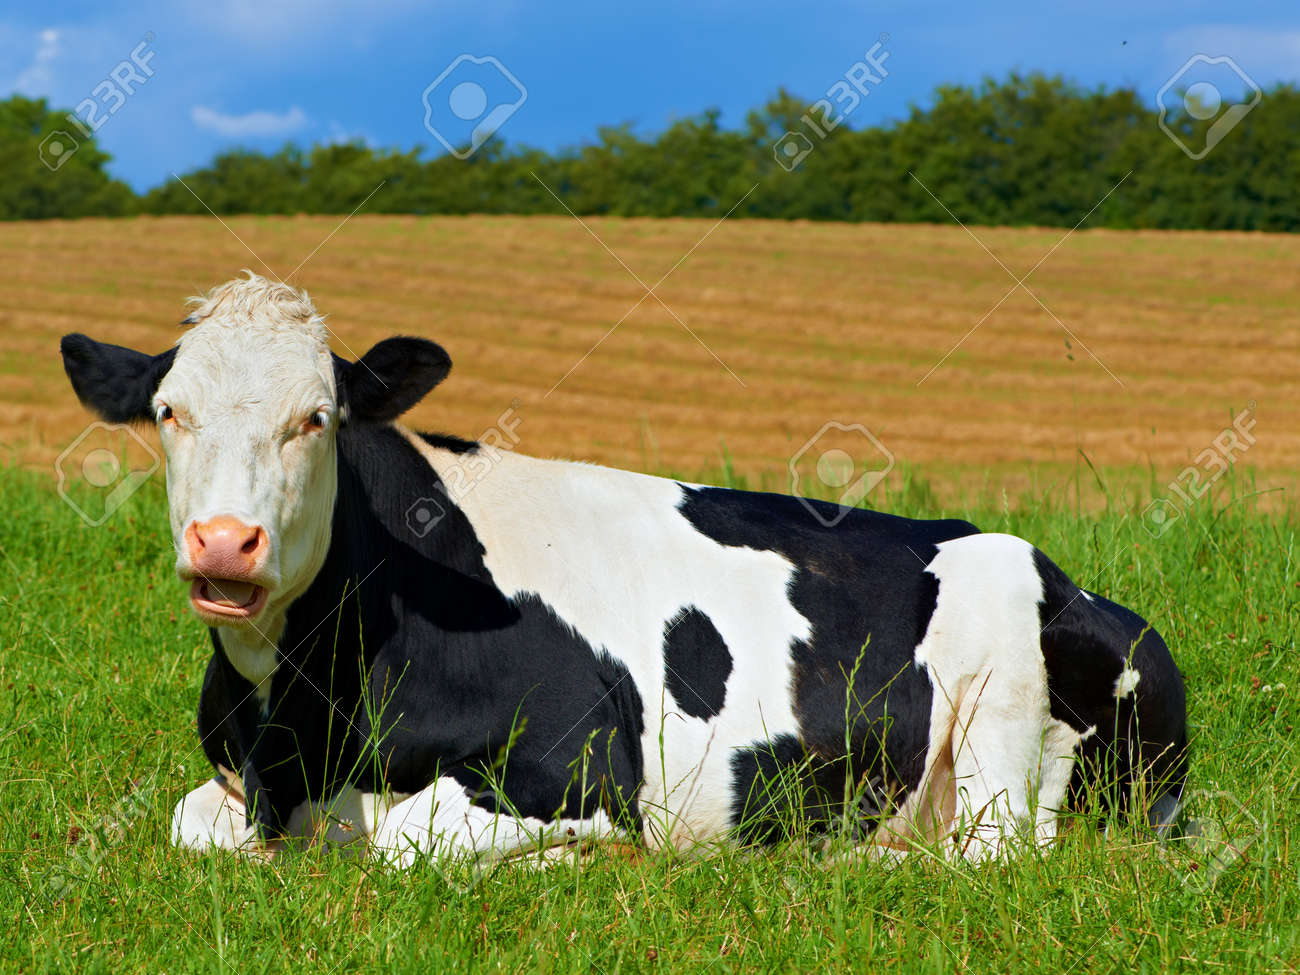 A photo of a black and white cow in natural setting Stock Photo - 14859625